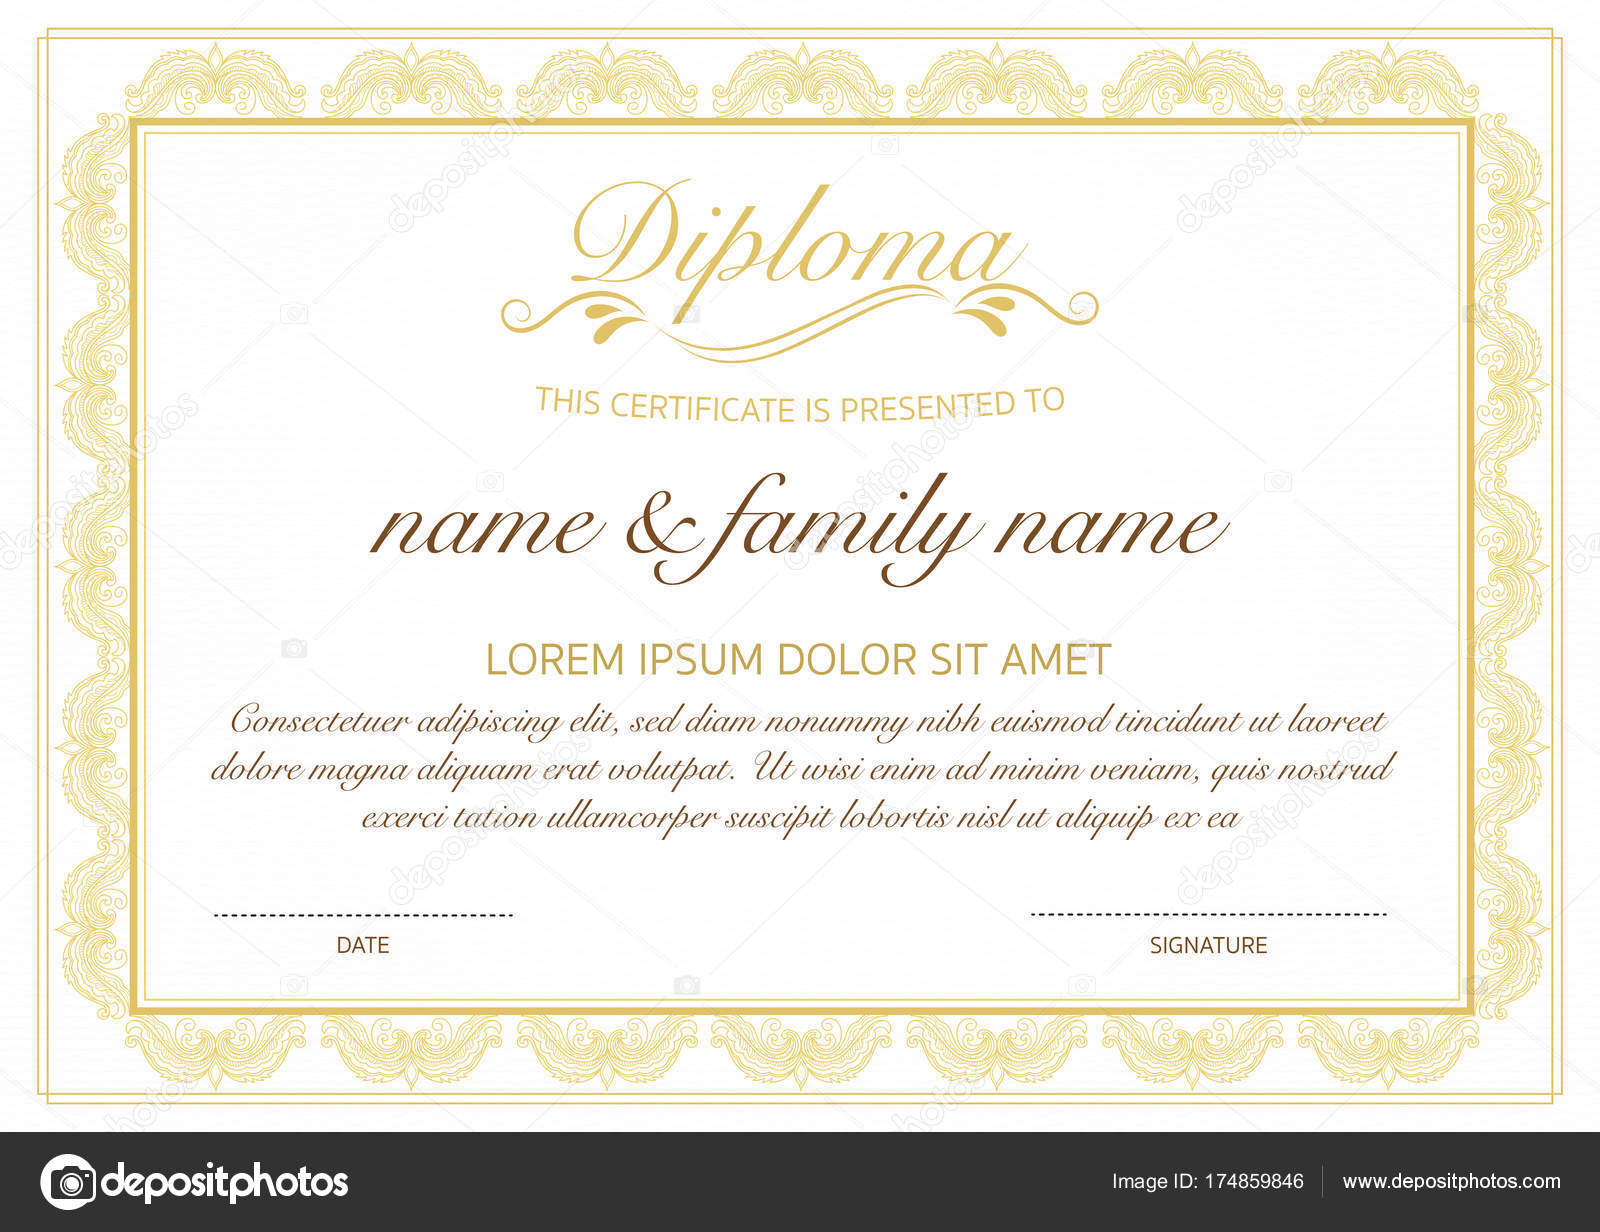 Certificate Of Diploma Template With Golden Floral Design Stock